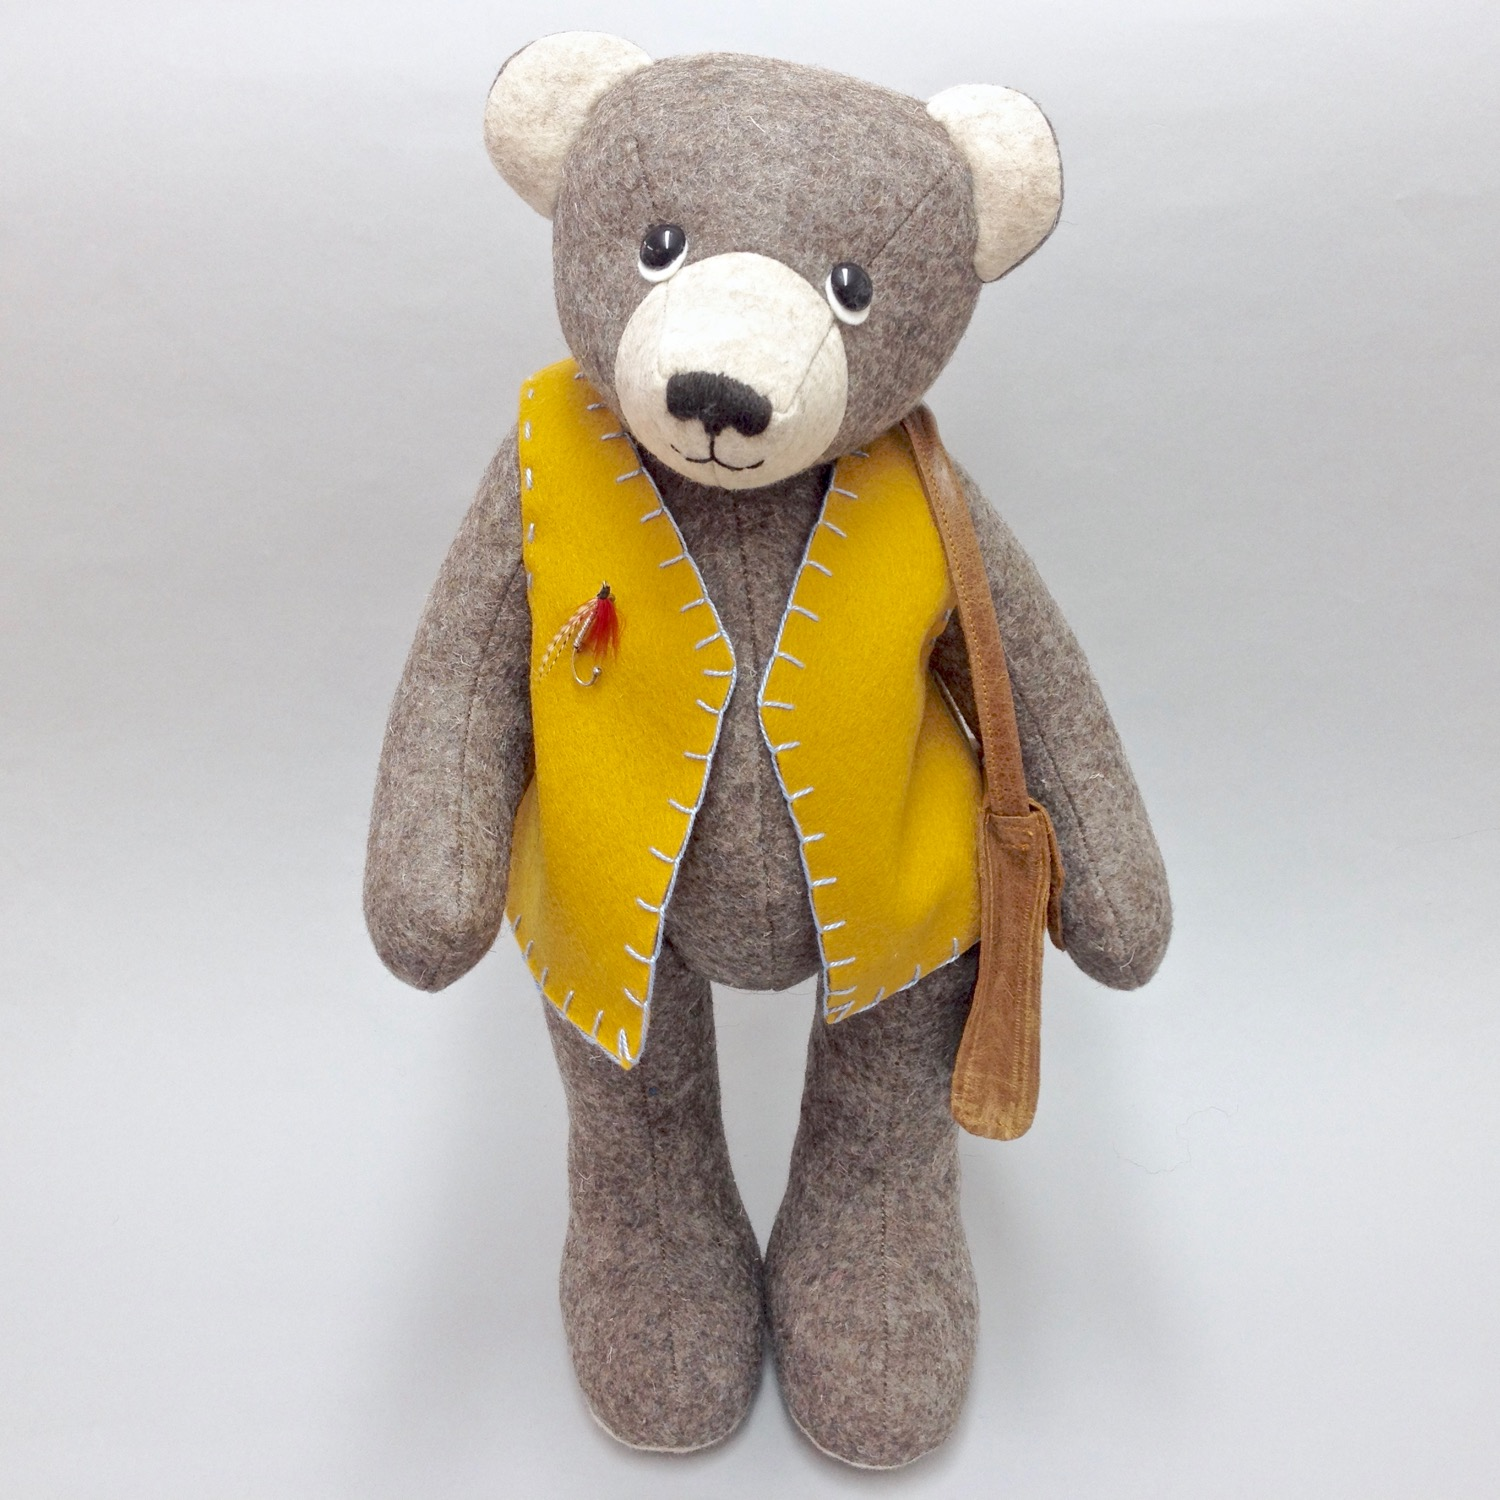 One-of-a-kind felt artist teddy bear by Laura Mirjami